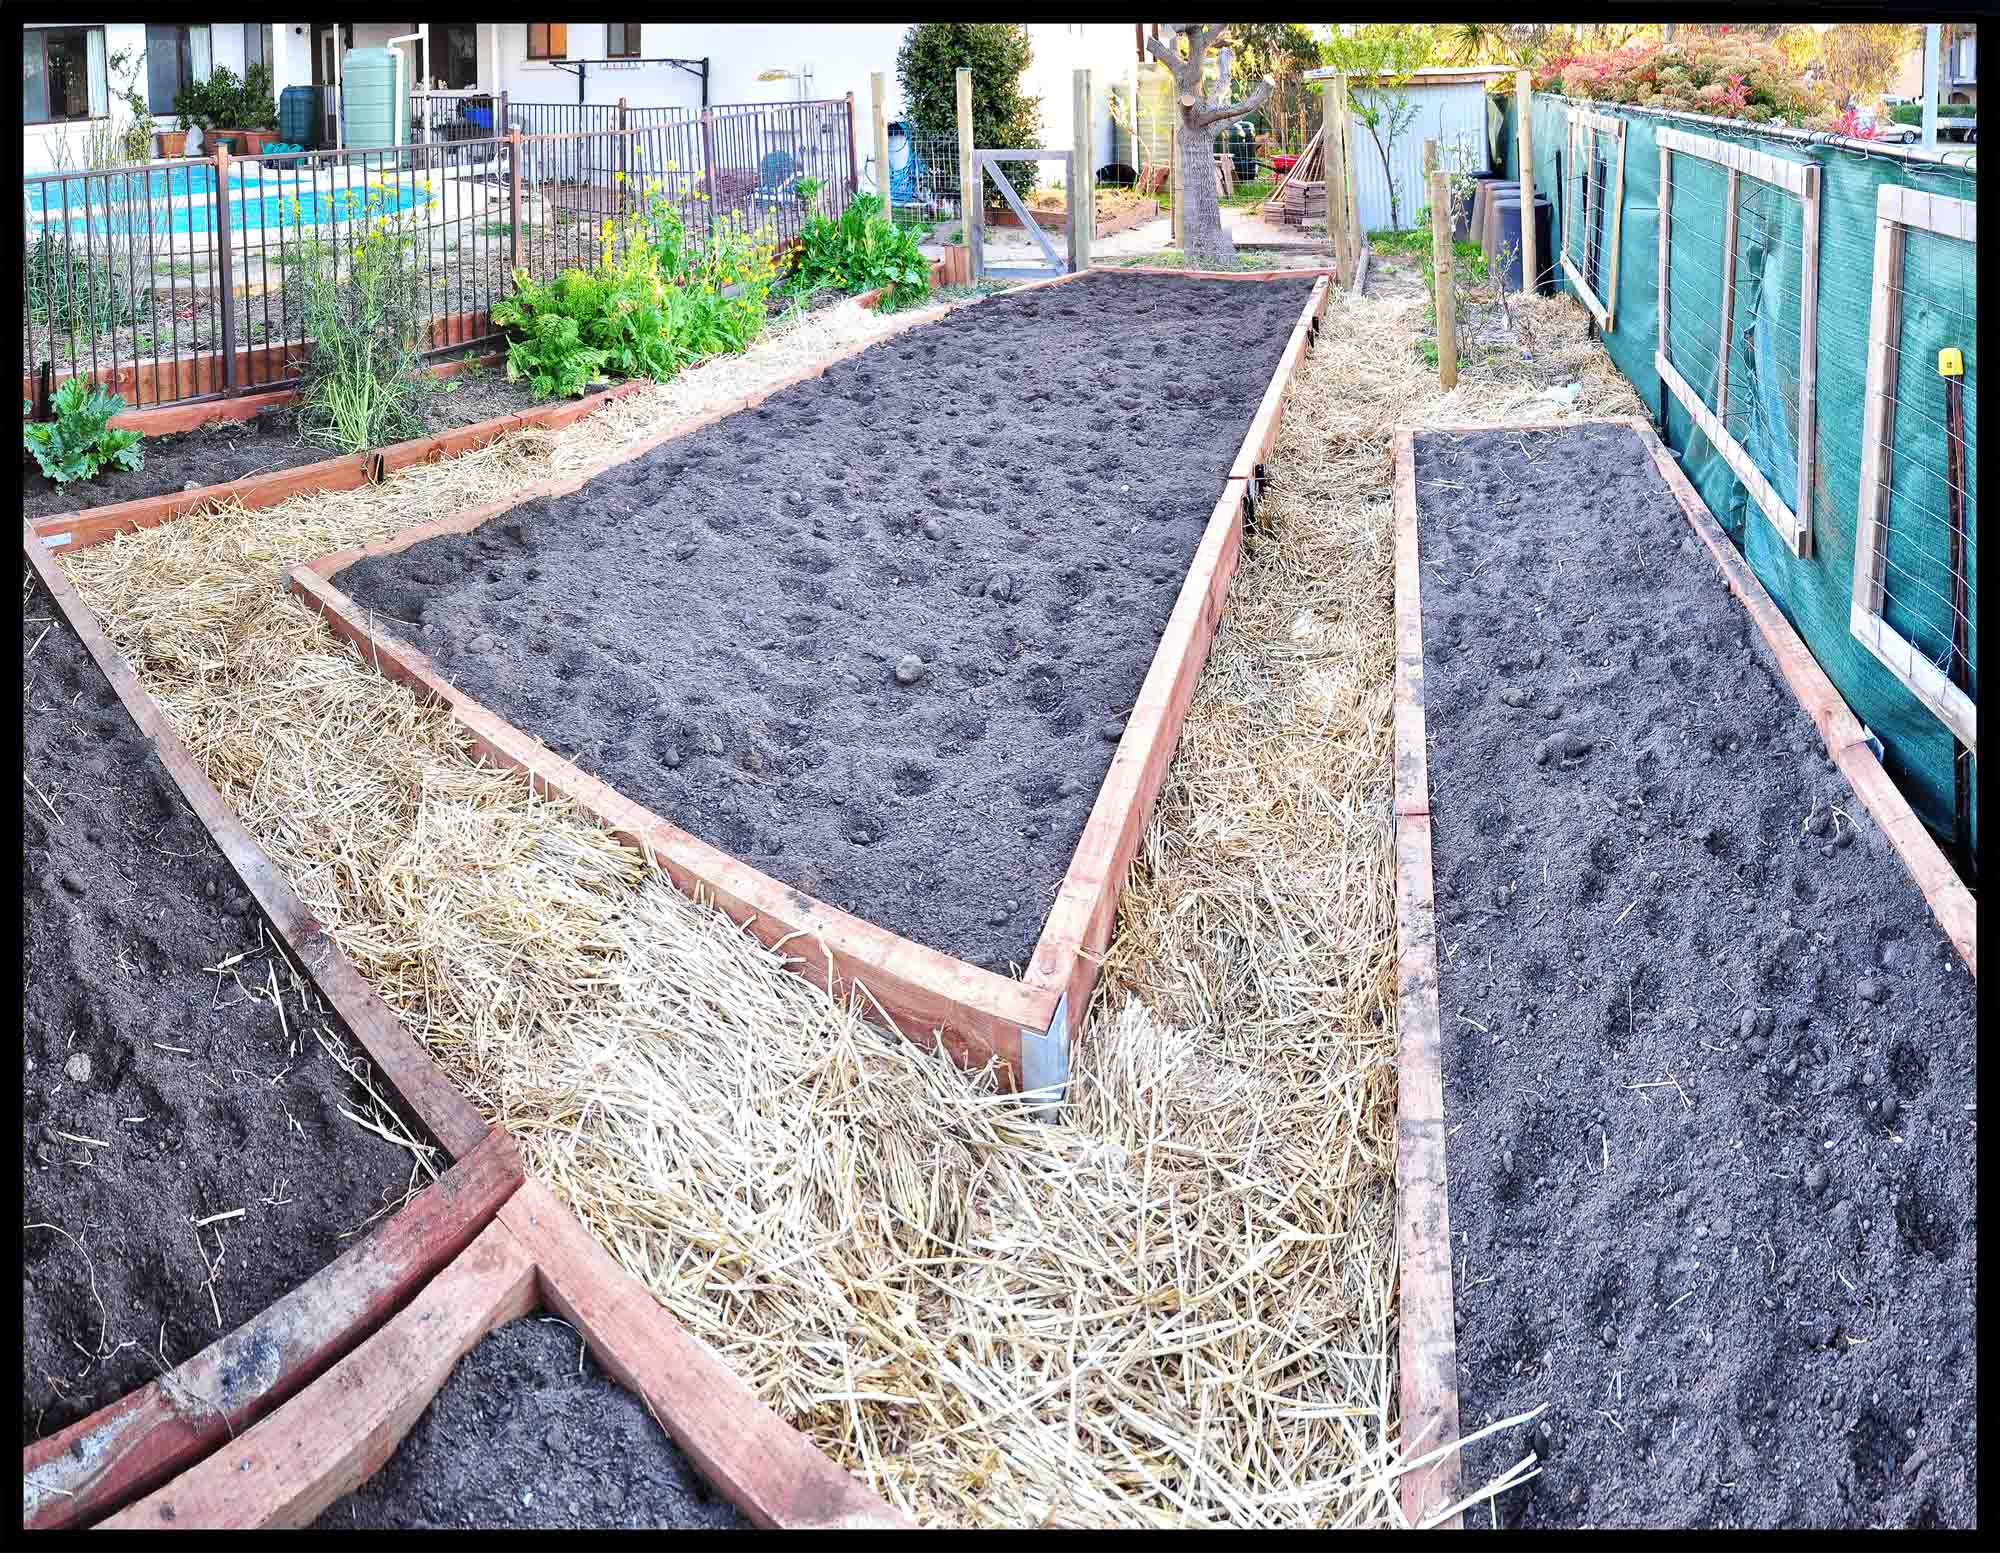 Finished new vegetable beds - an awesome weekend backyard blitz.